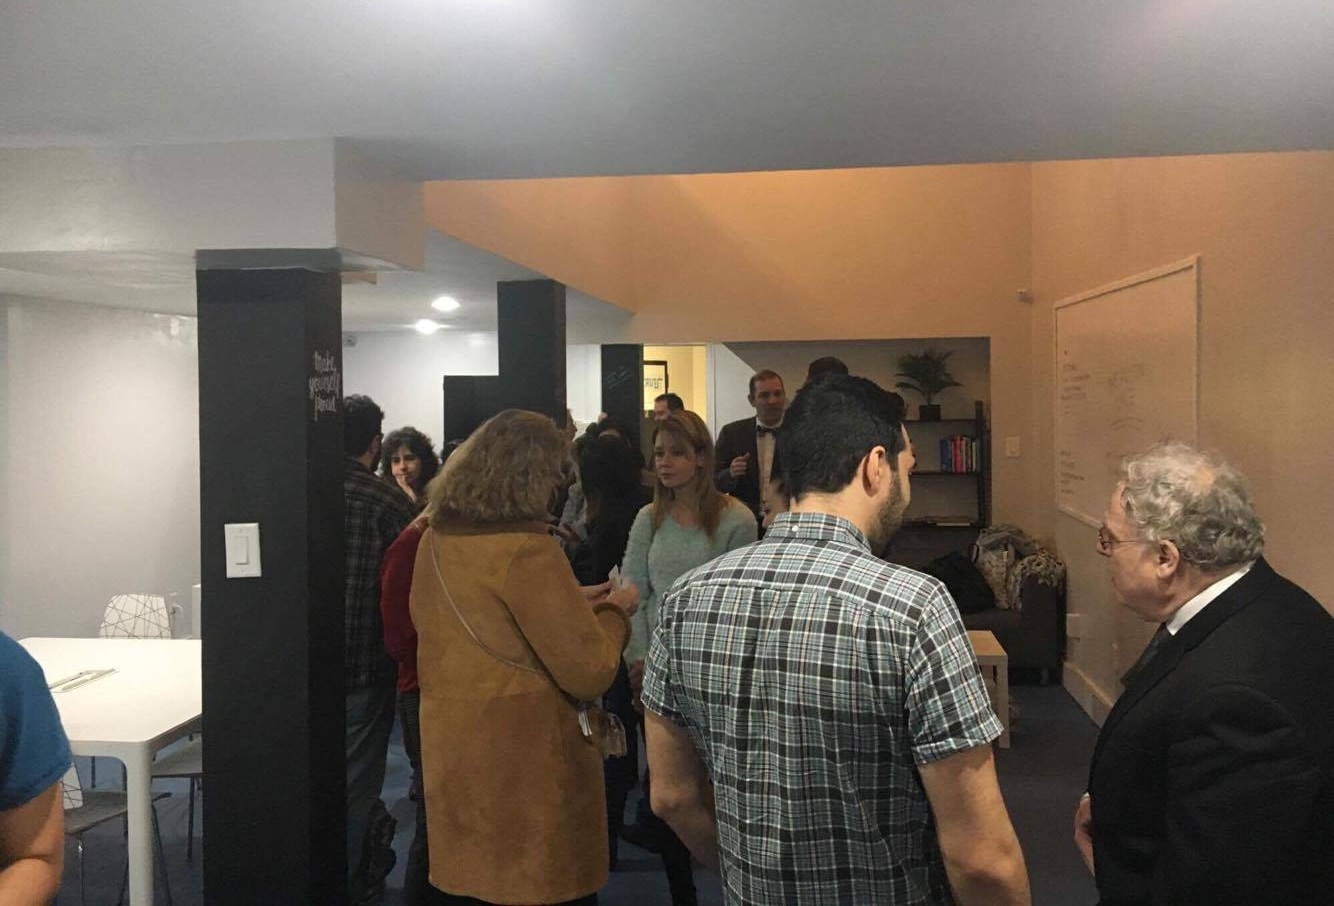 The Austin Space and Queens Connection hosted a Business Card Exchange Mixer on March 9, 2017.